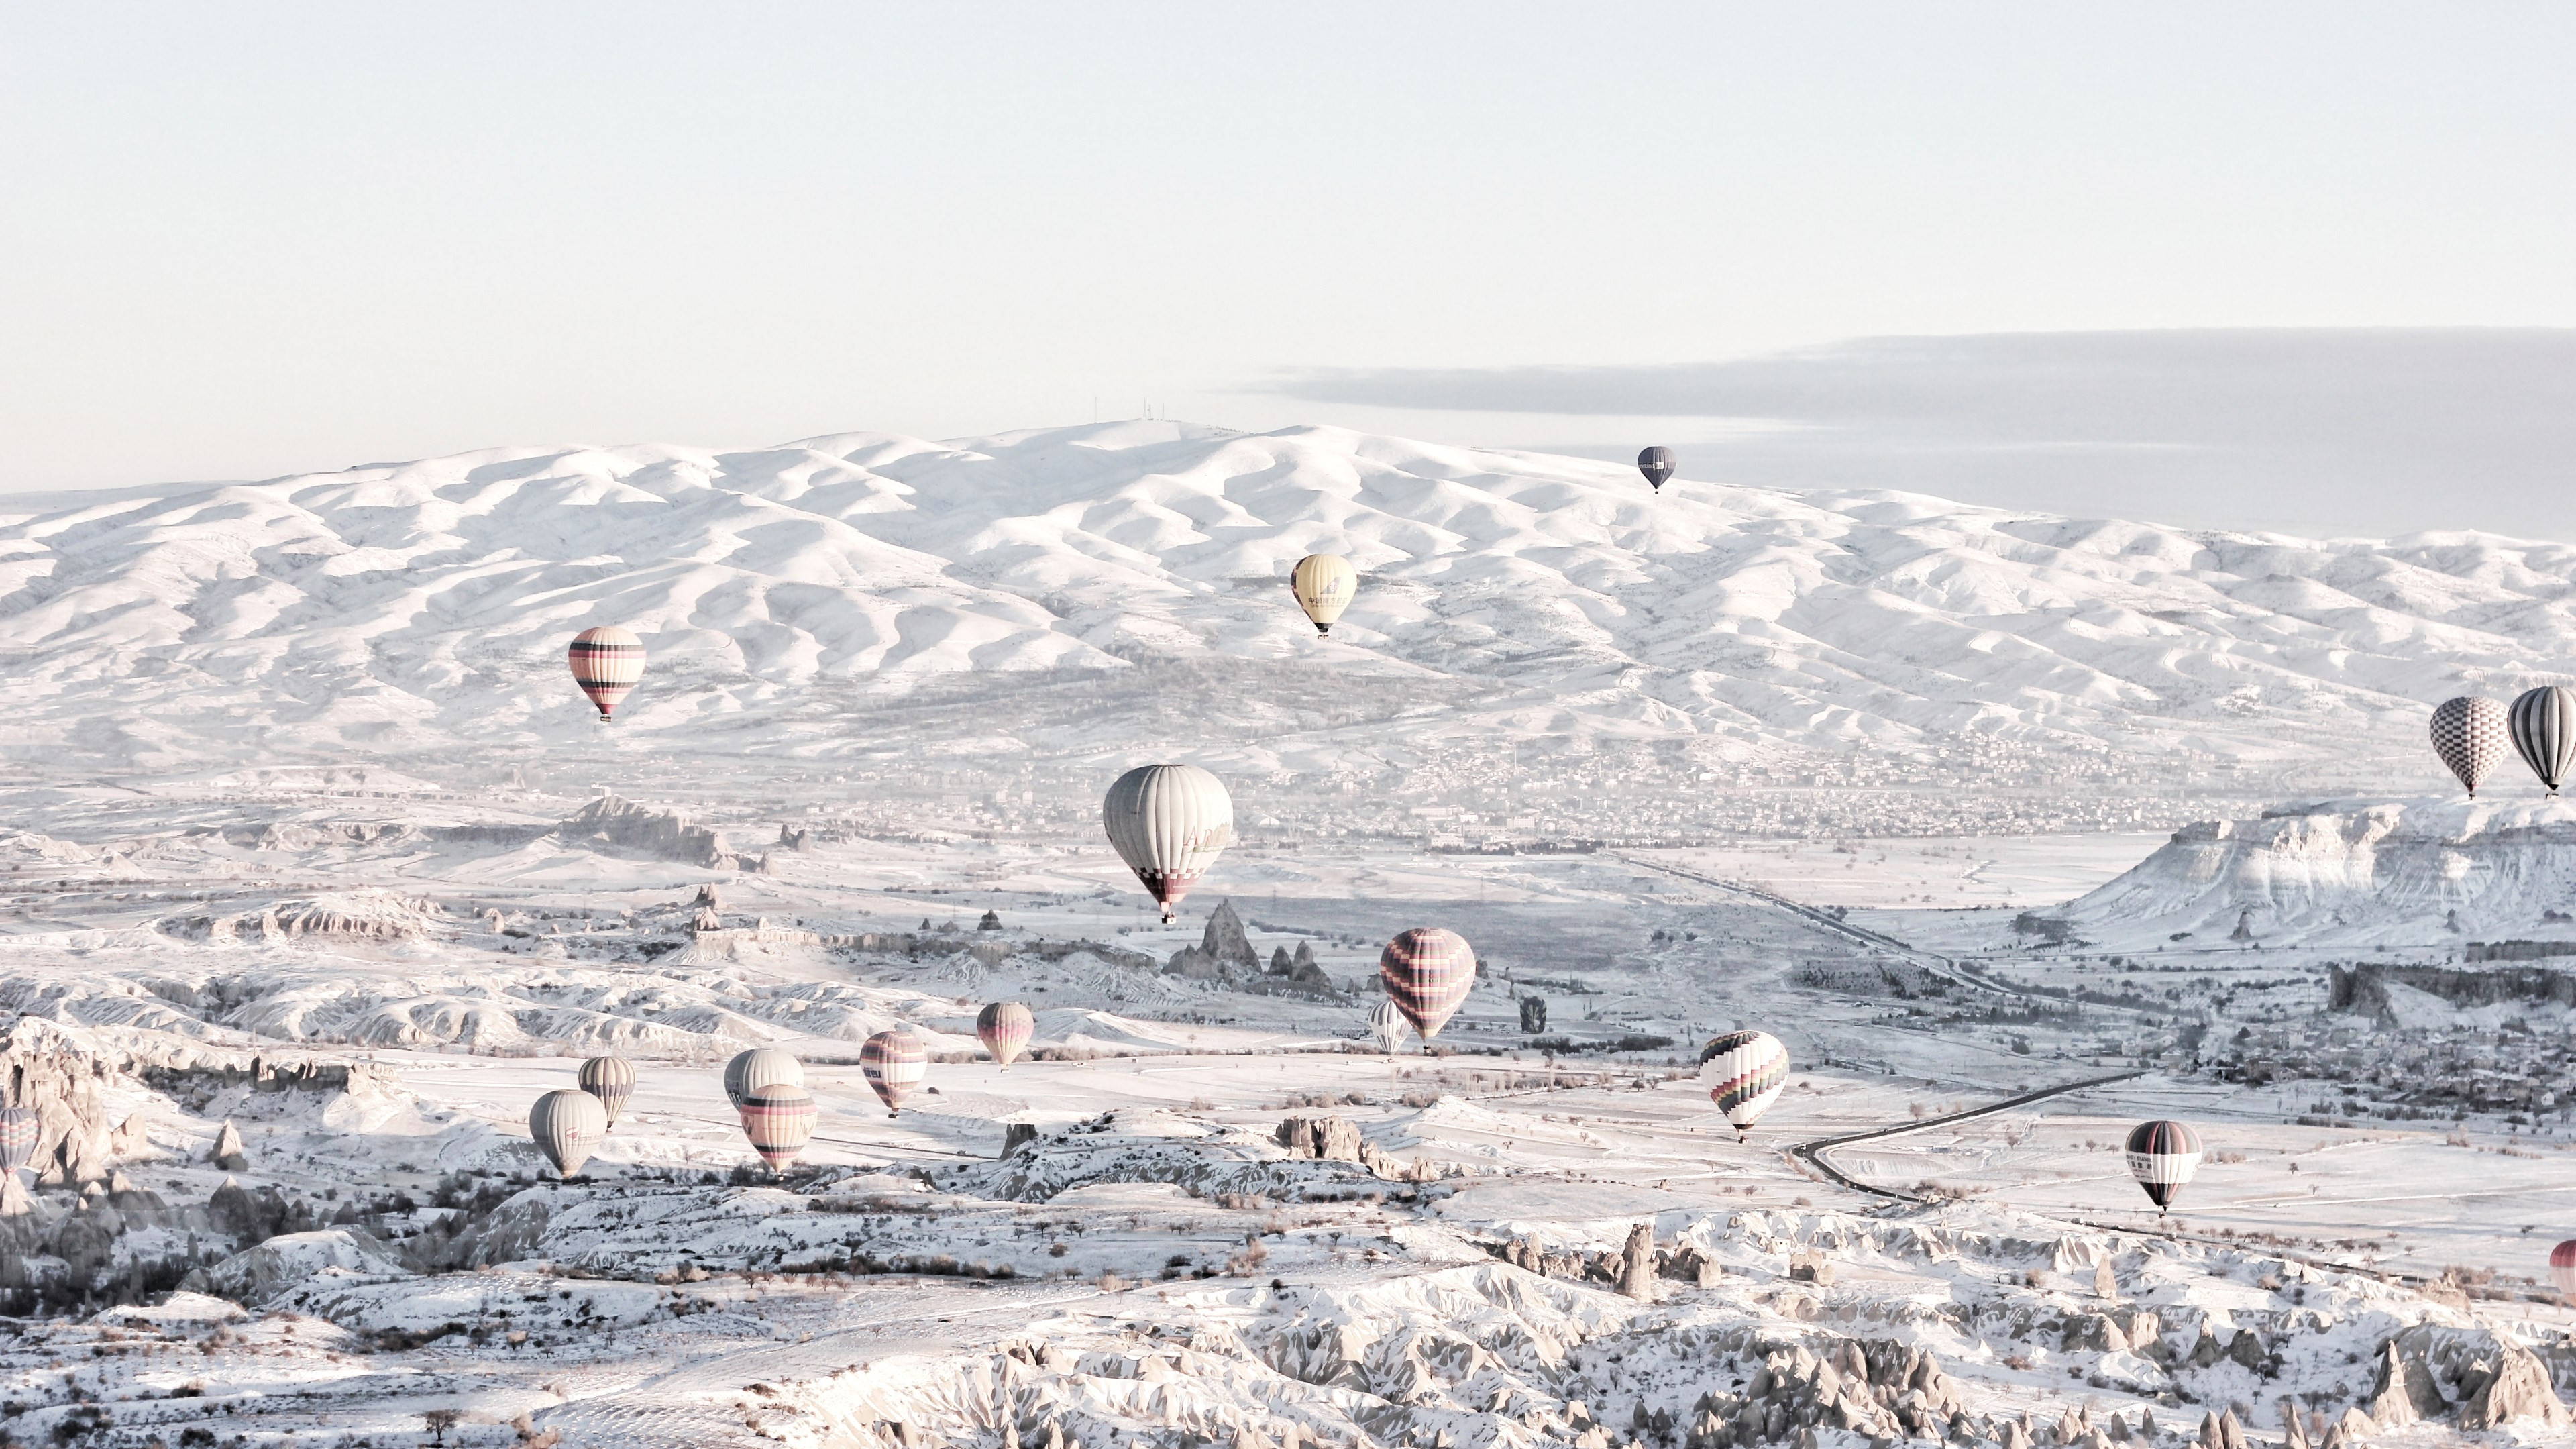 Hot air balloons in Winter landscape wallpaper 3840x2160